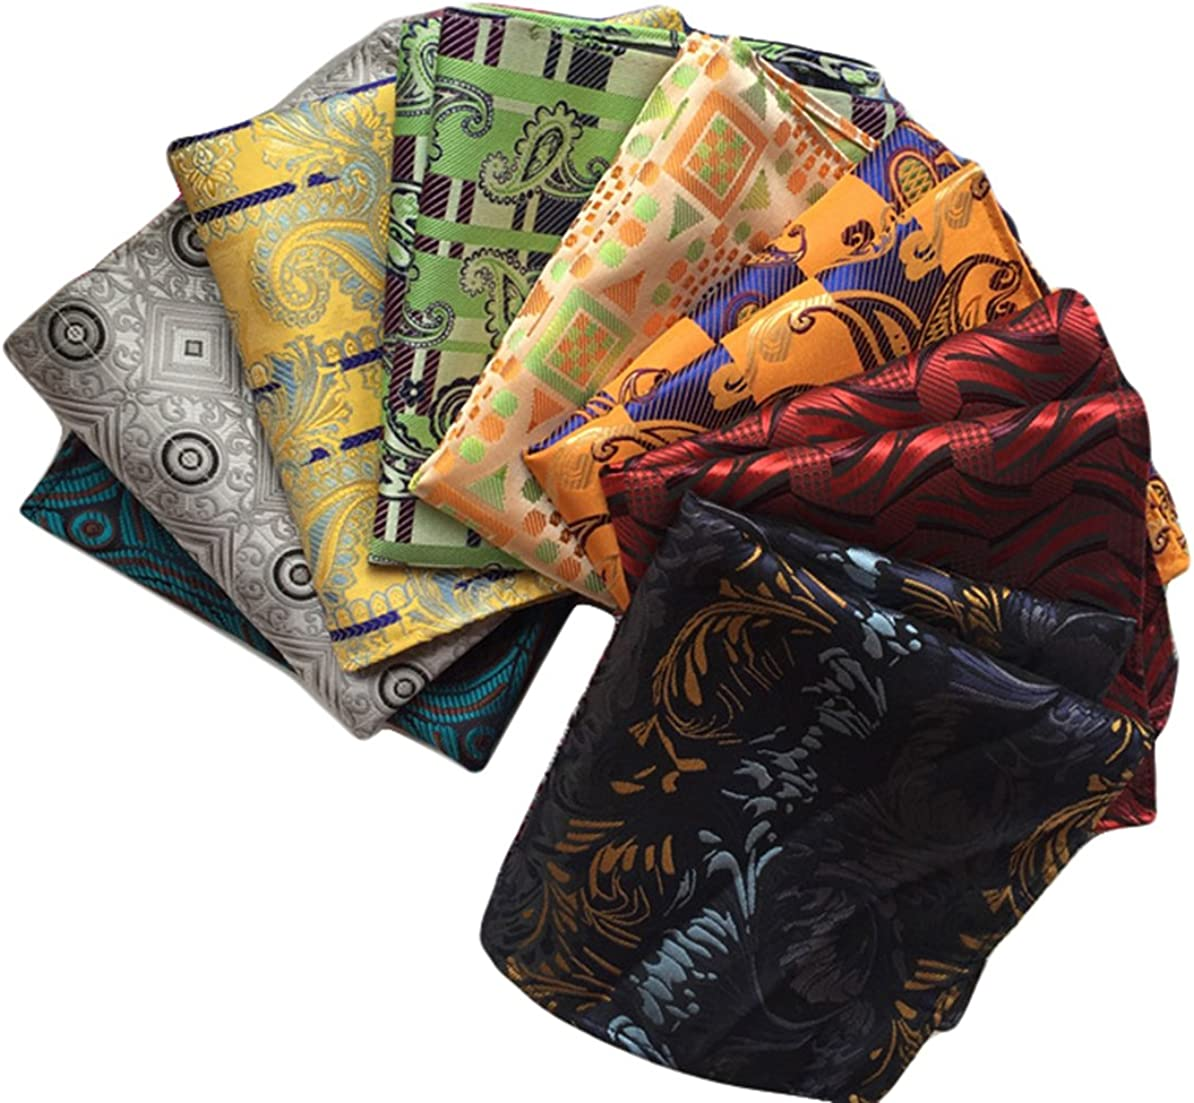 MENDENG Mens 8 Pack Mixed Paisley Floral Pocket Square Wedding Handkerchief